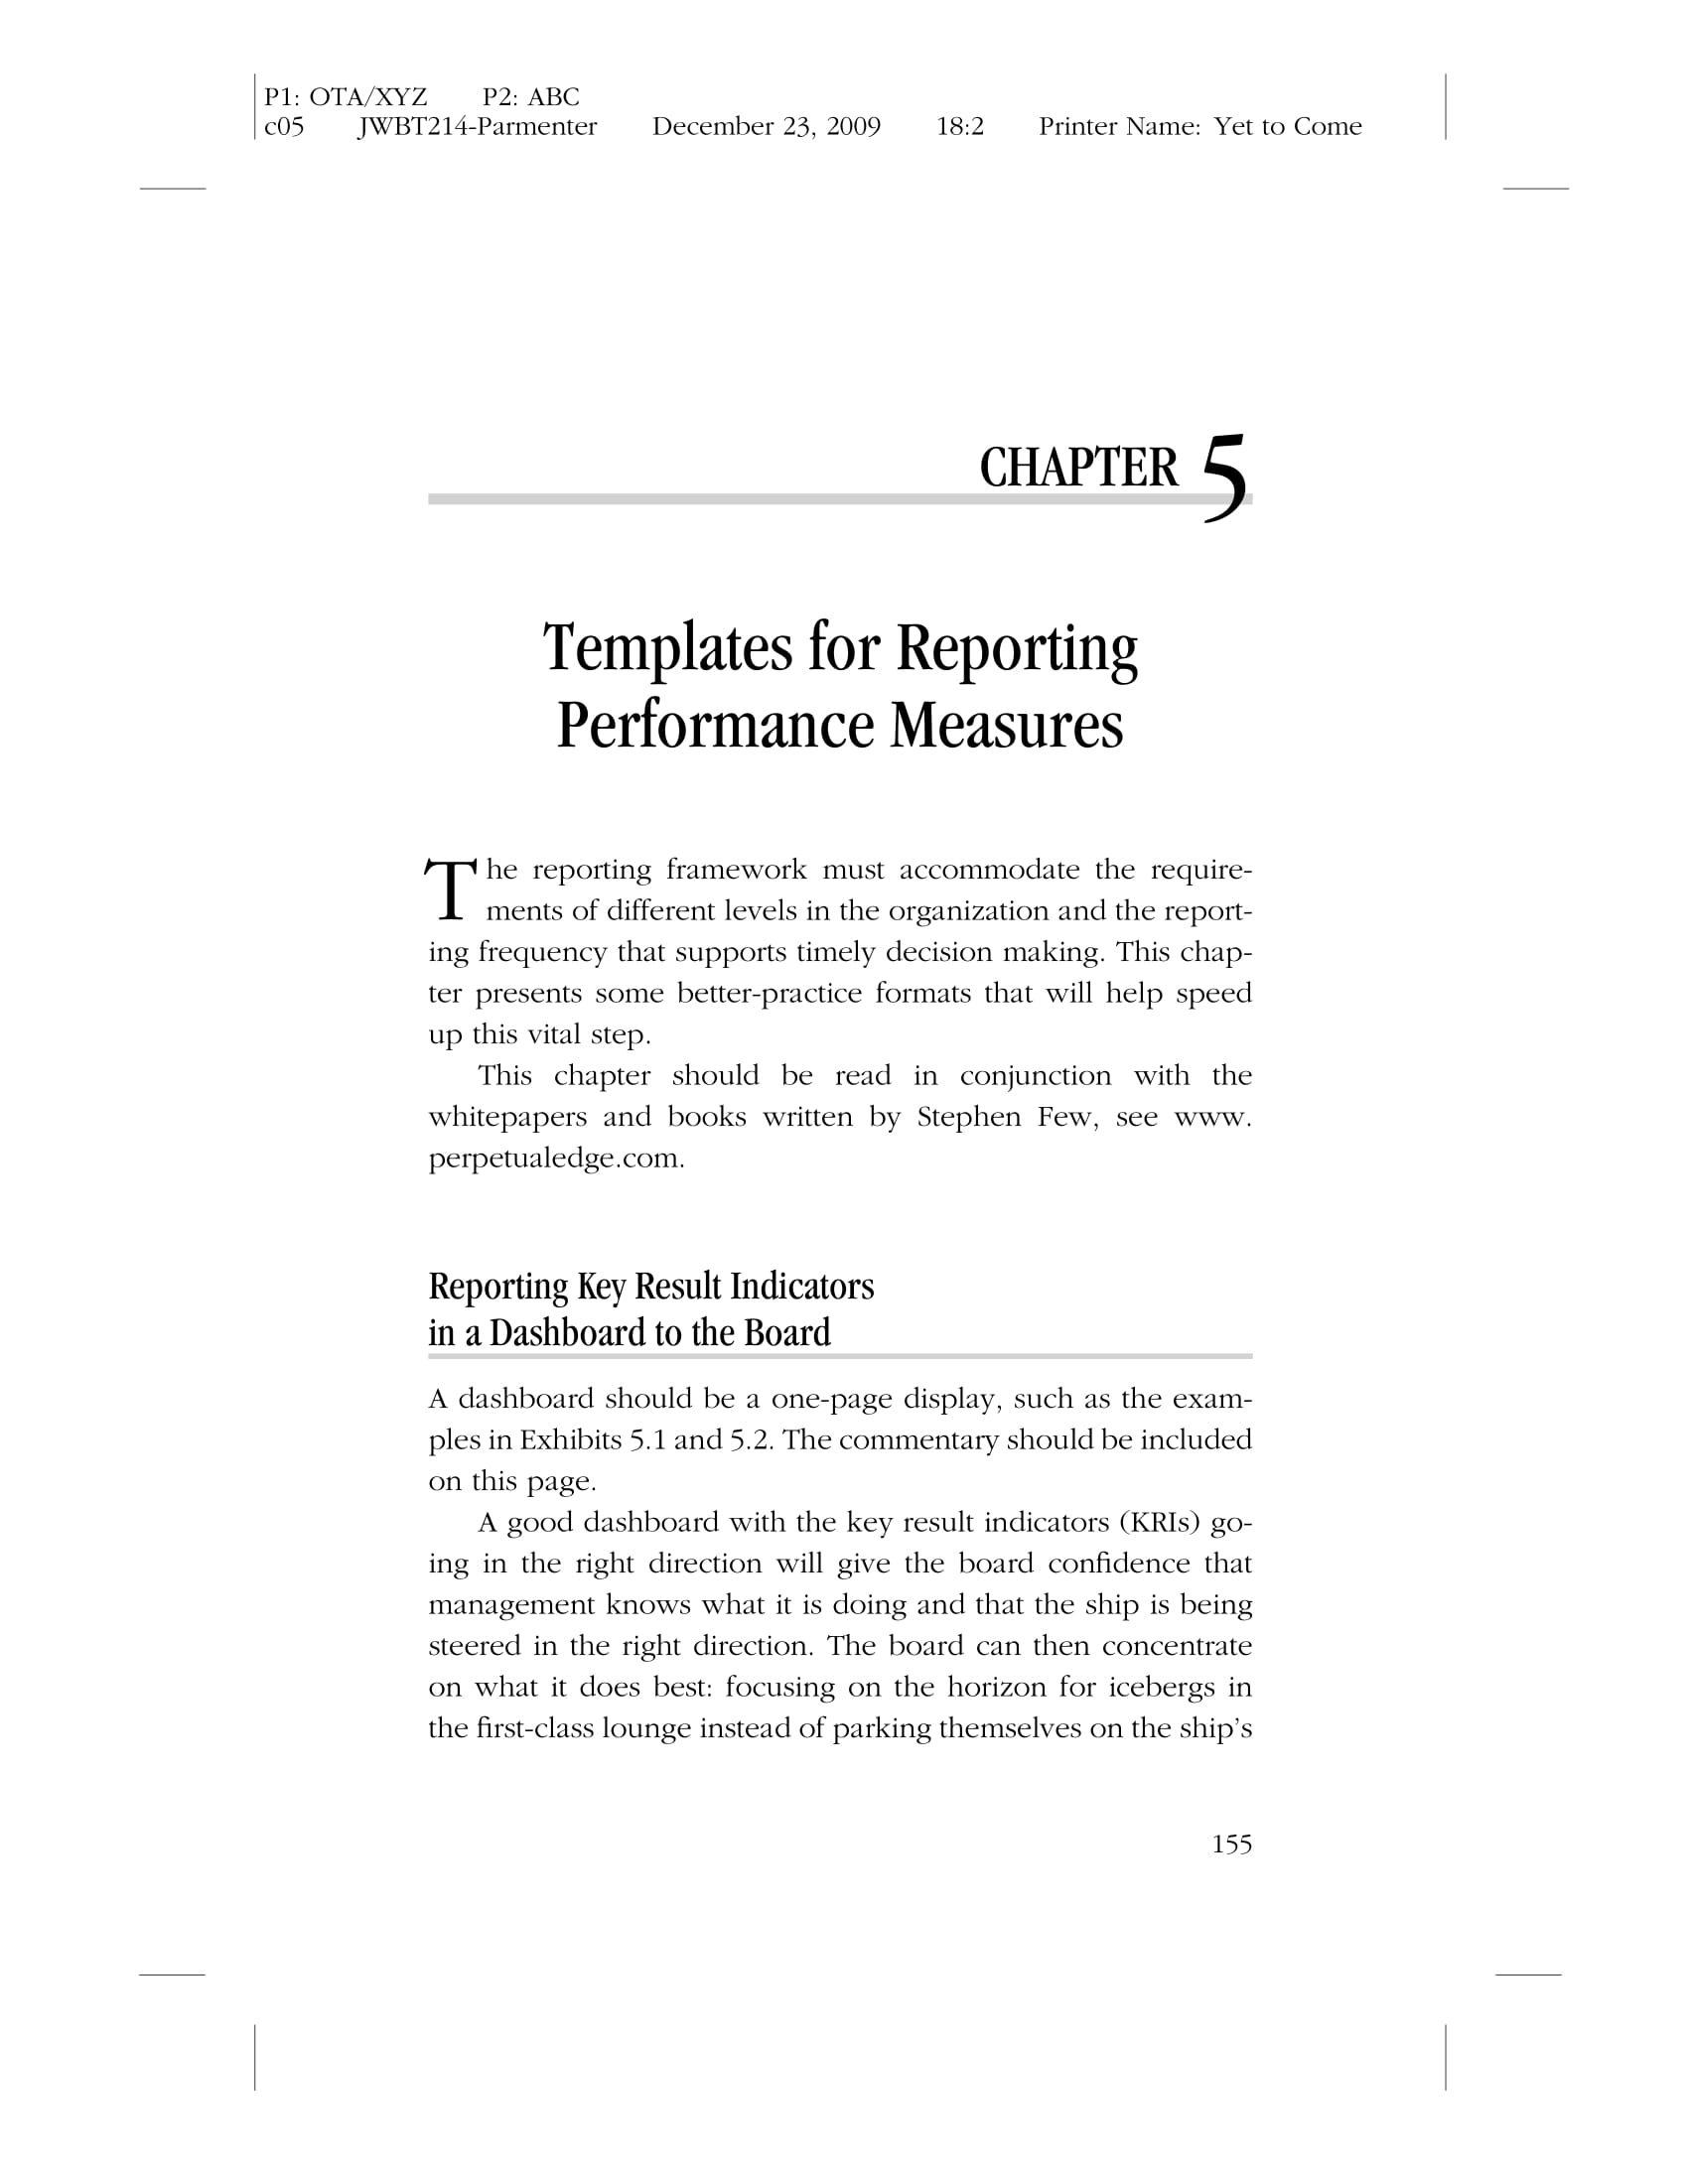 weekly operations and performance measures report template example 01